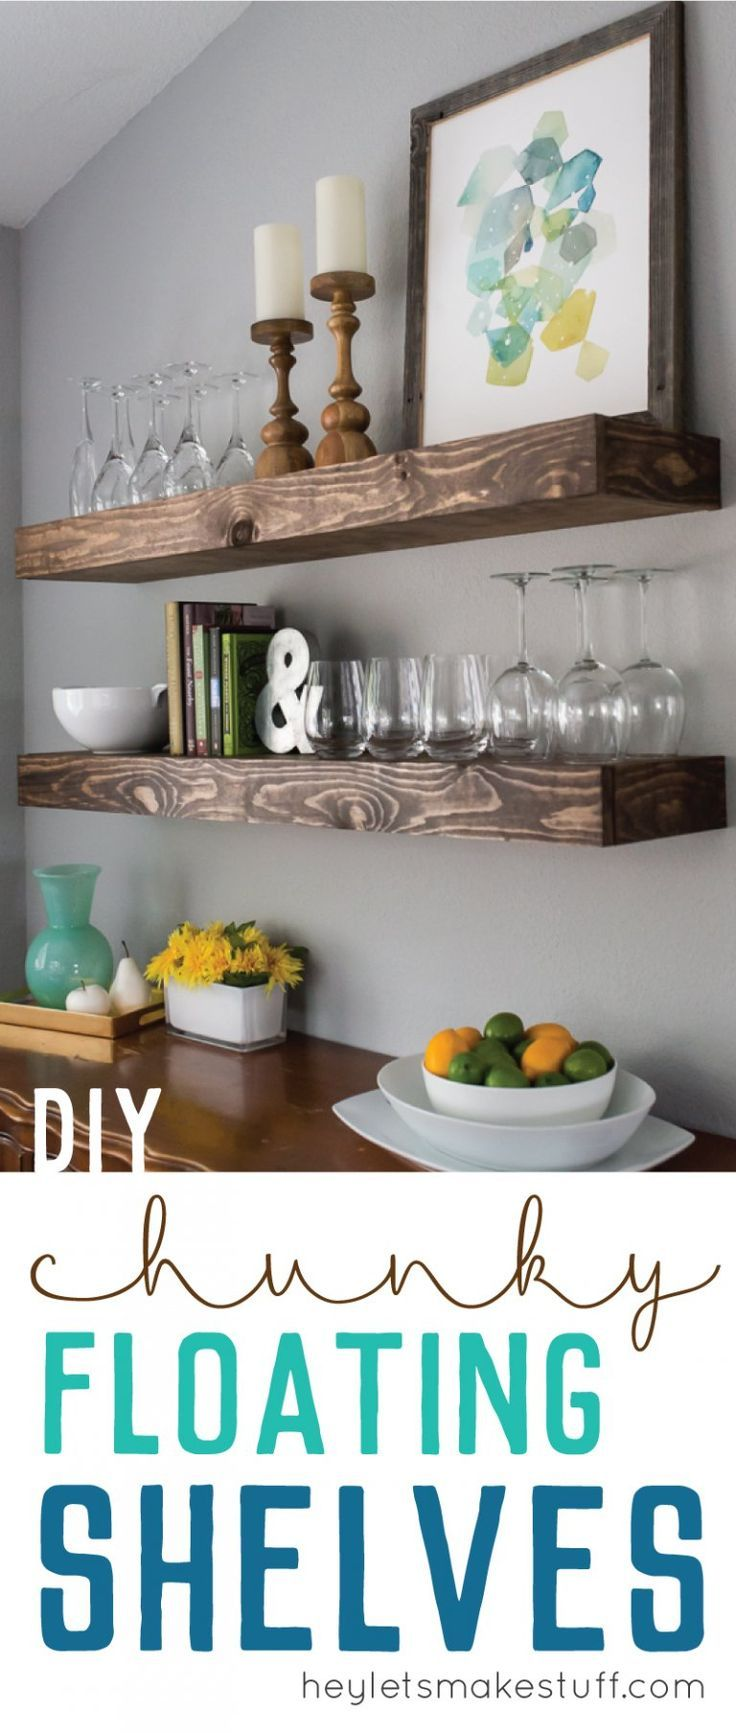 Chunky Floating Shelves Are A Great Way To Bring More Storage To Any Space.  Stylish